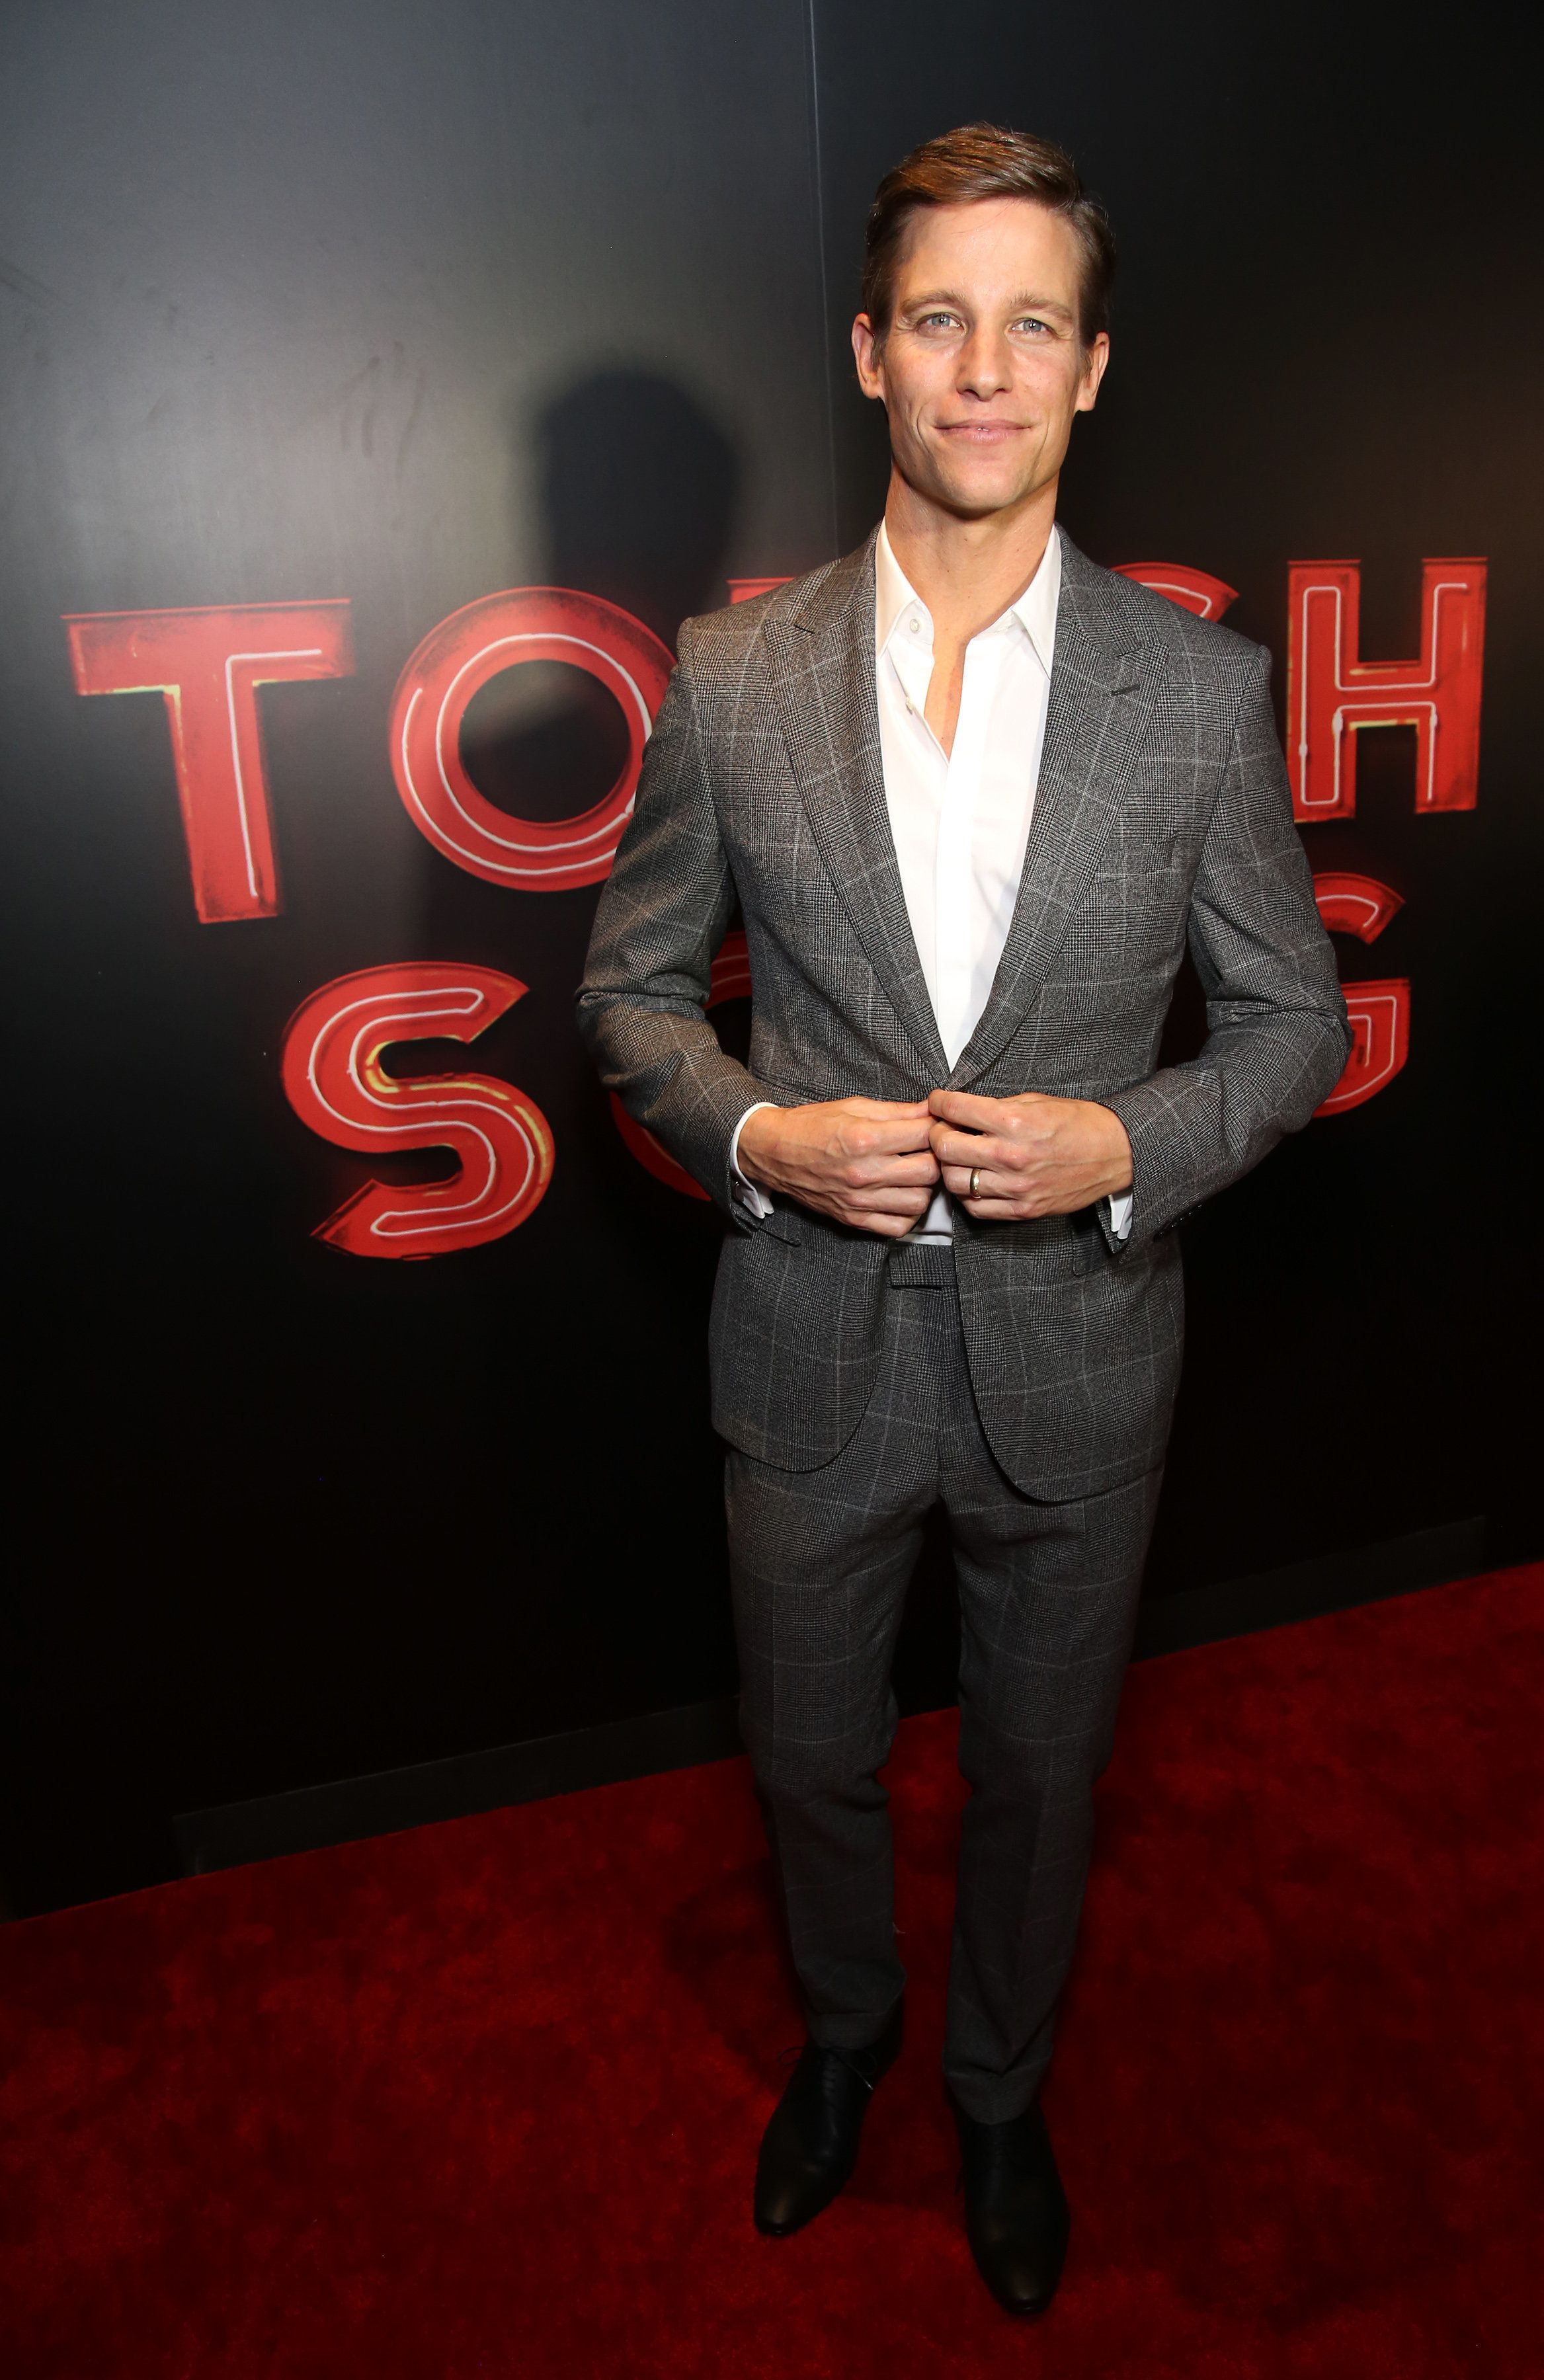 NEW YORK, NY - NOVEMBER 01:  Ward Horton attends the Broadway Opening Night After Party for 'Torch Song' at Sony Hall on November 1, 2018 in New York City.  (Photo by Walter McBride/Getty Images)